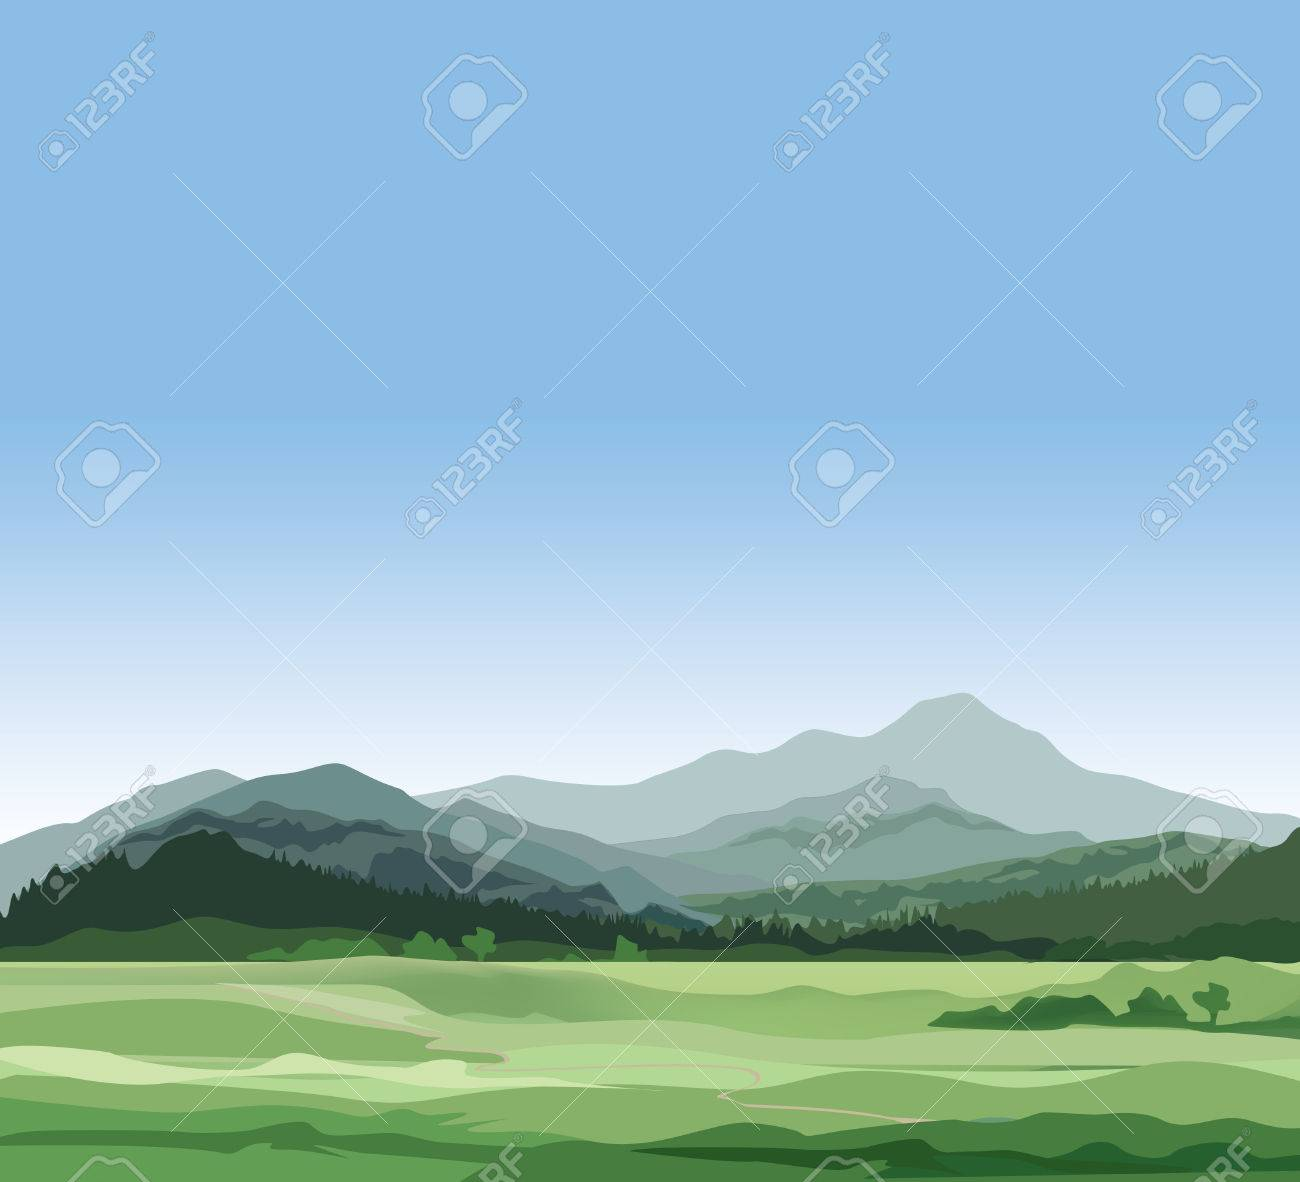 Rural landscape with mountains. Vector countryside view with forest, field and hills - 53120478